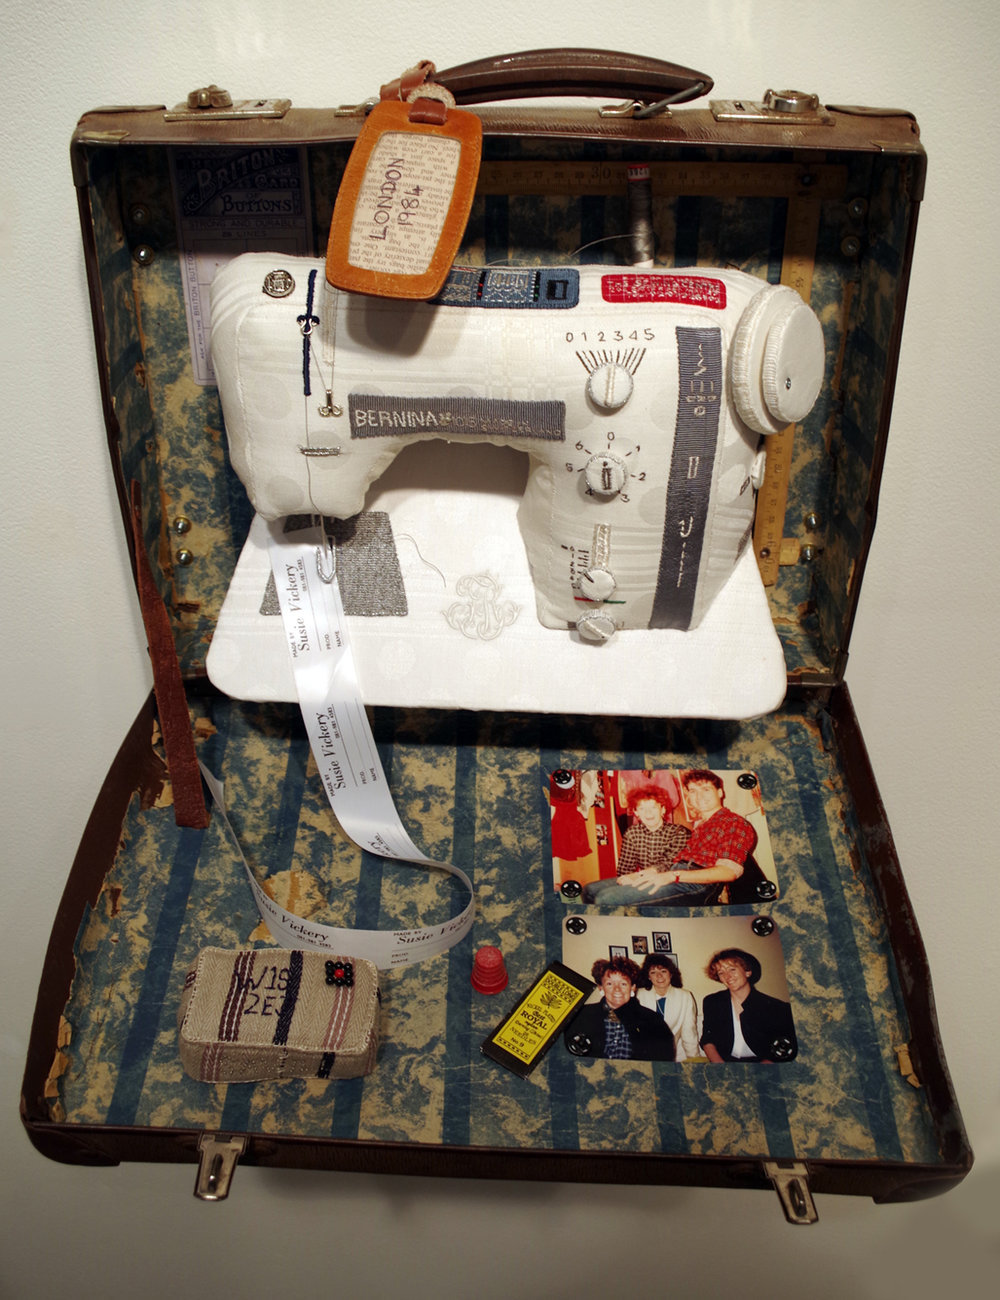 7. 'London - 1985', Susie Vickery, embroidery, applique, found objects, $1,400